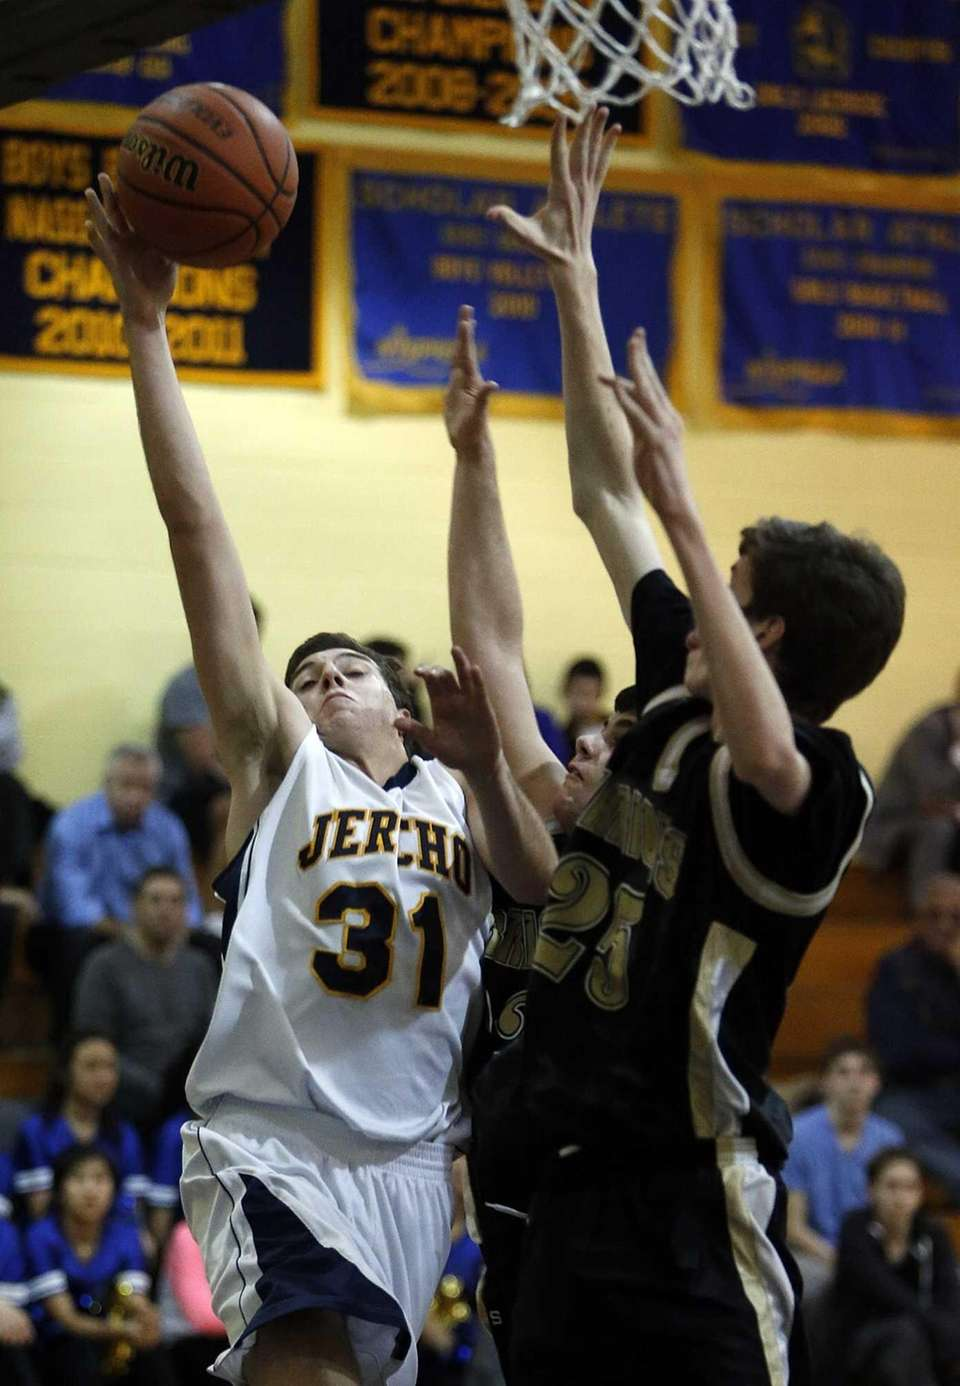 Jericho's Erik Kanzer goes for the layup against